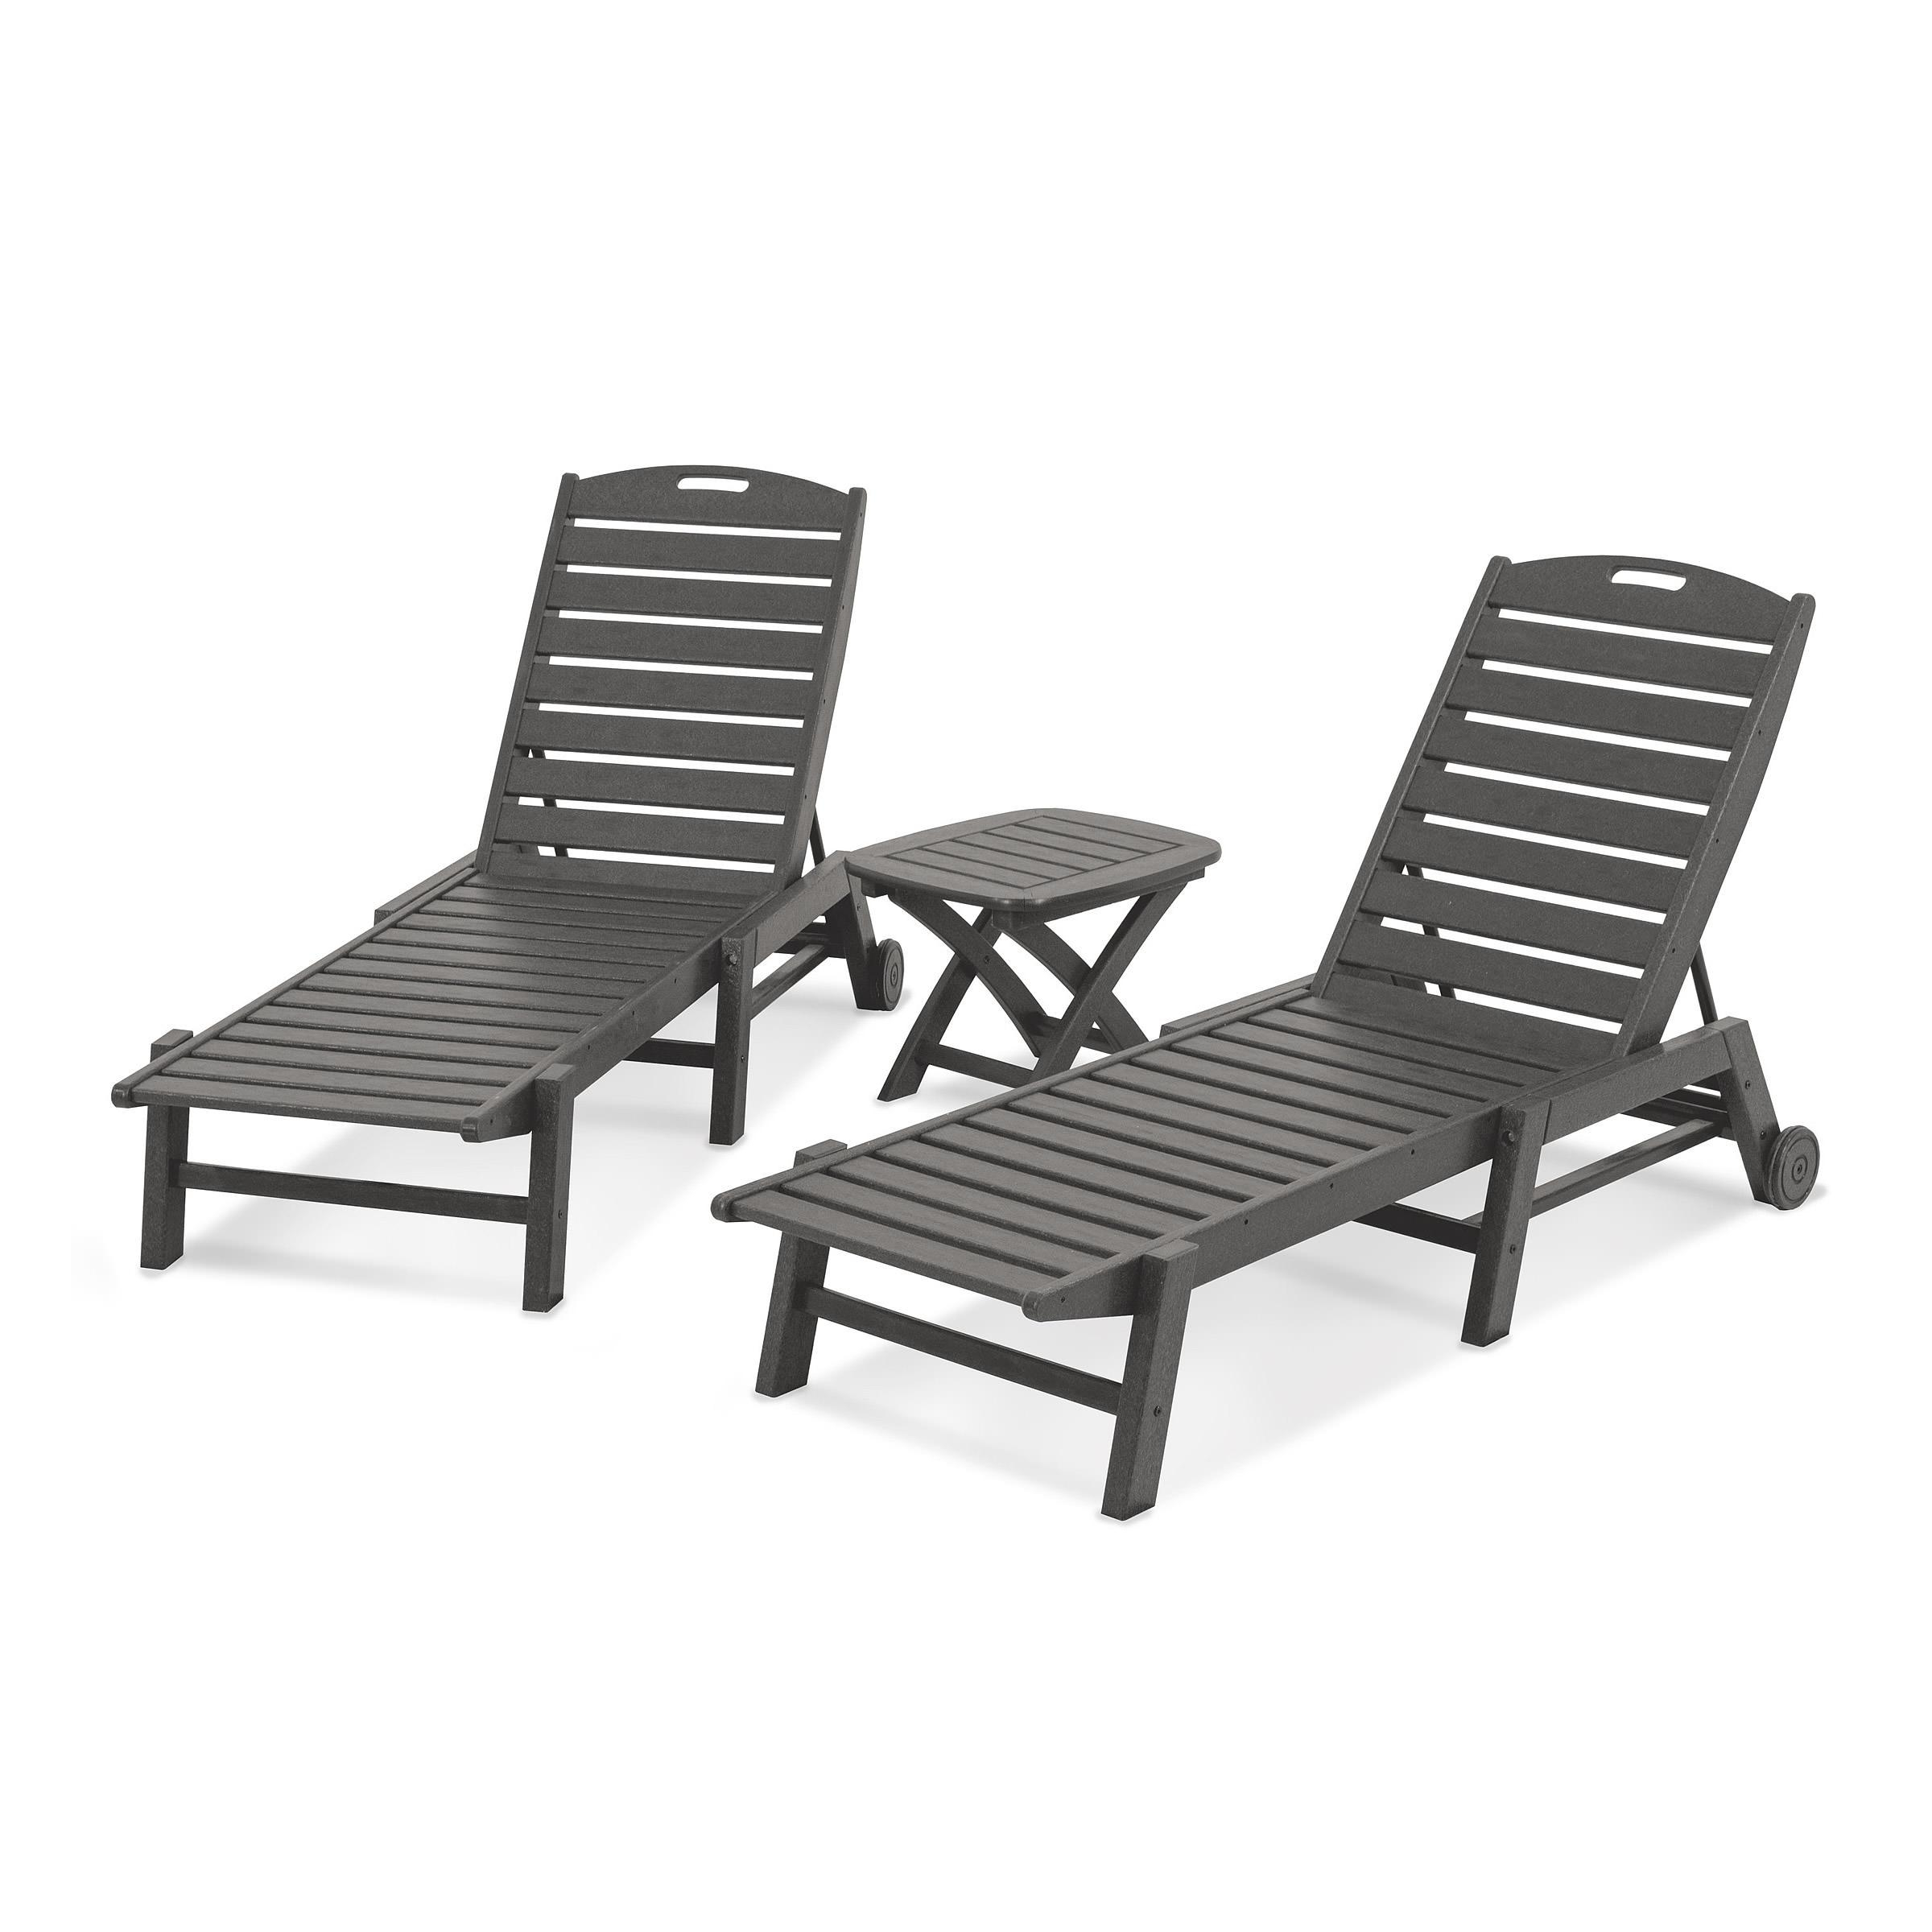 Polywood® Nautical 3 Piece Armless Chaise Set Pertaining To Current Nautical 3 Piece Outdoor Chaise Lounge Sets With Wheels And Table (Gallery 9 of 25)